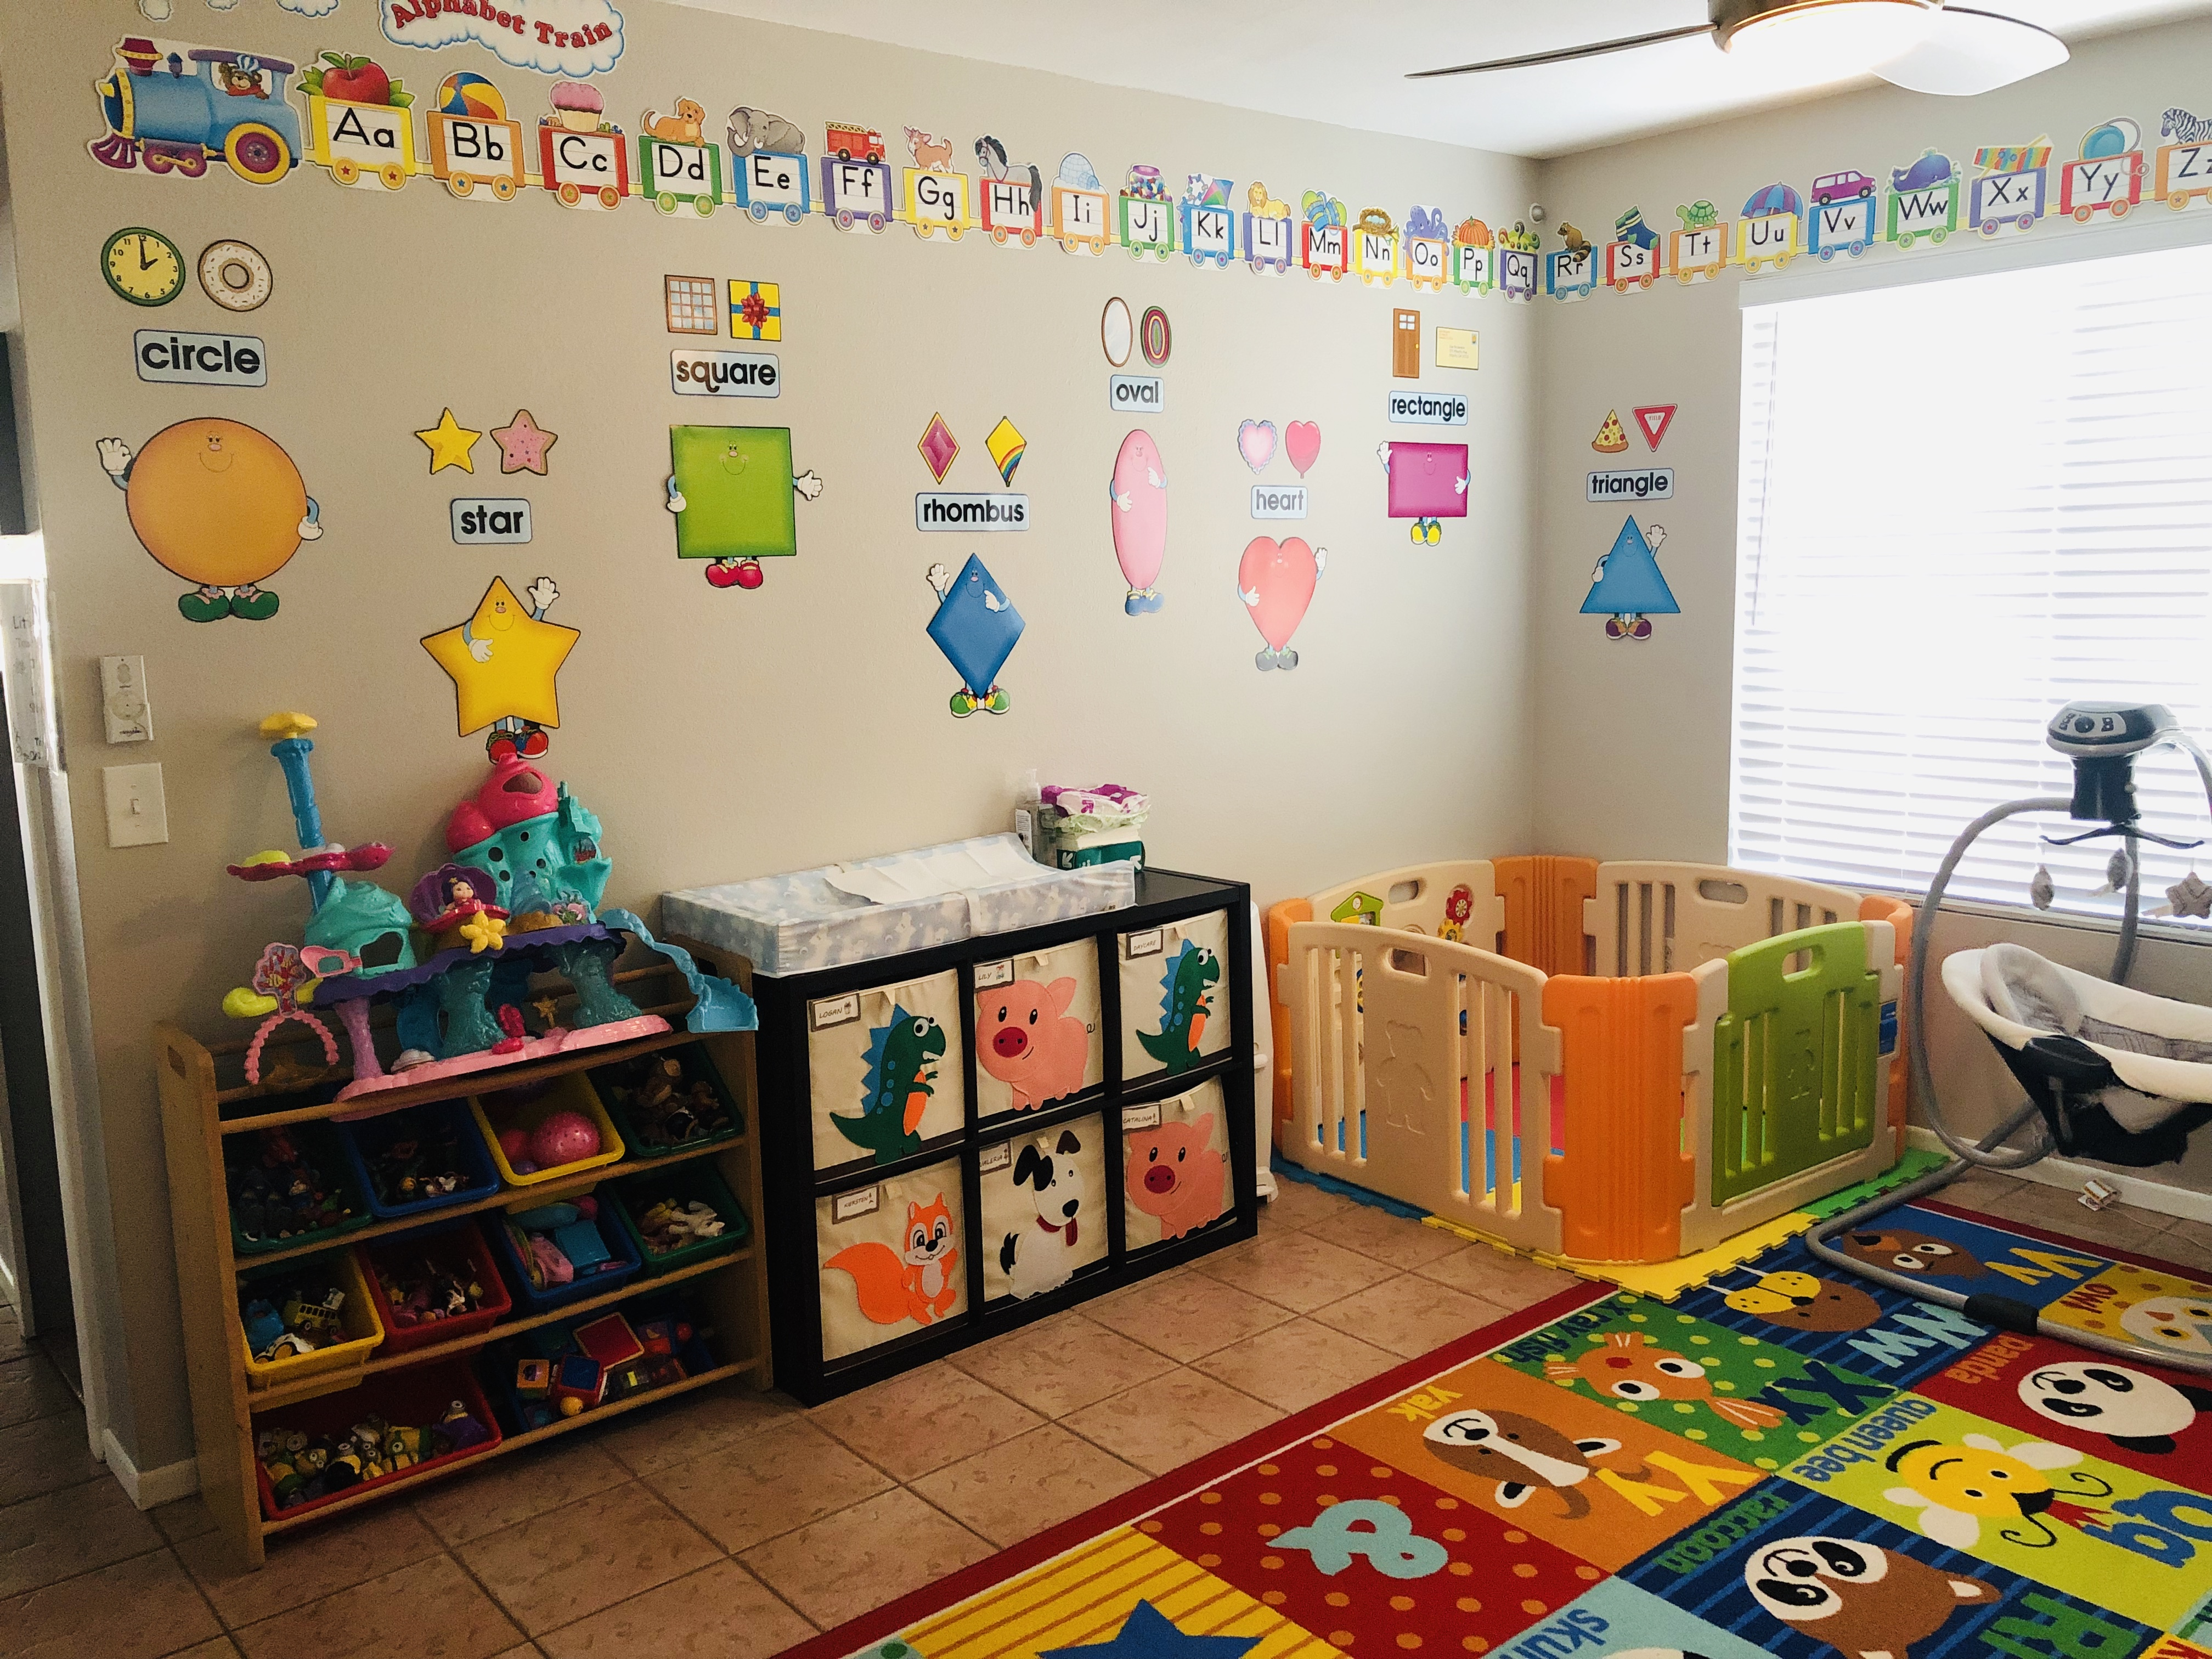 Mrs Alicia Family Daycare